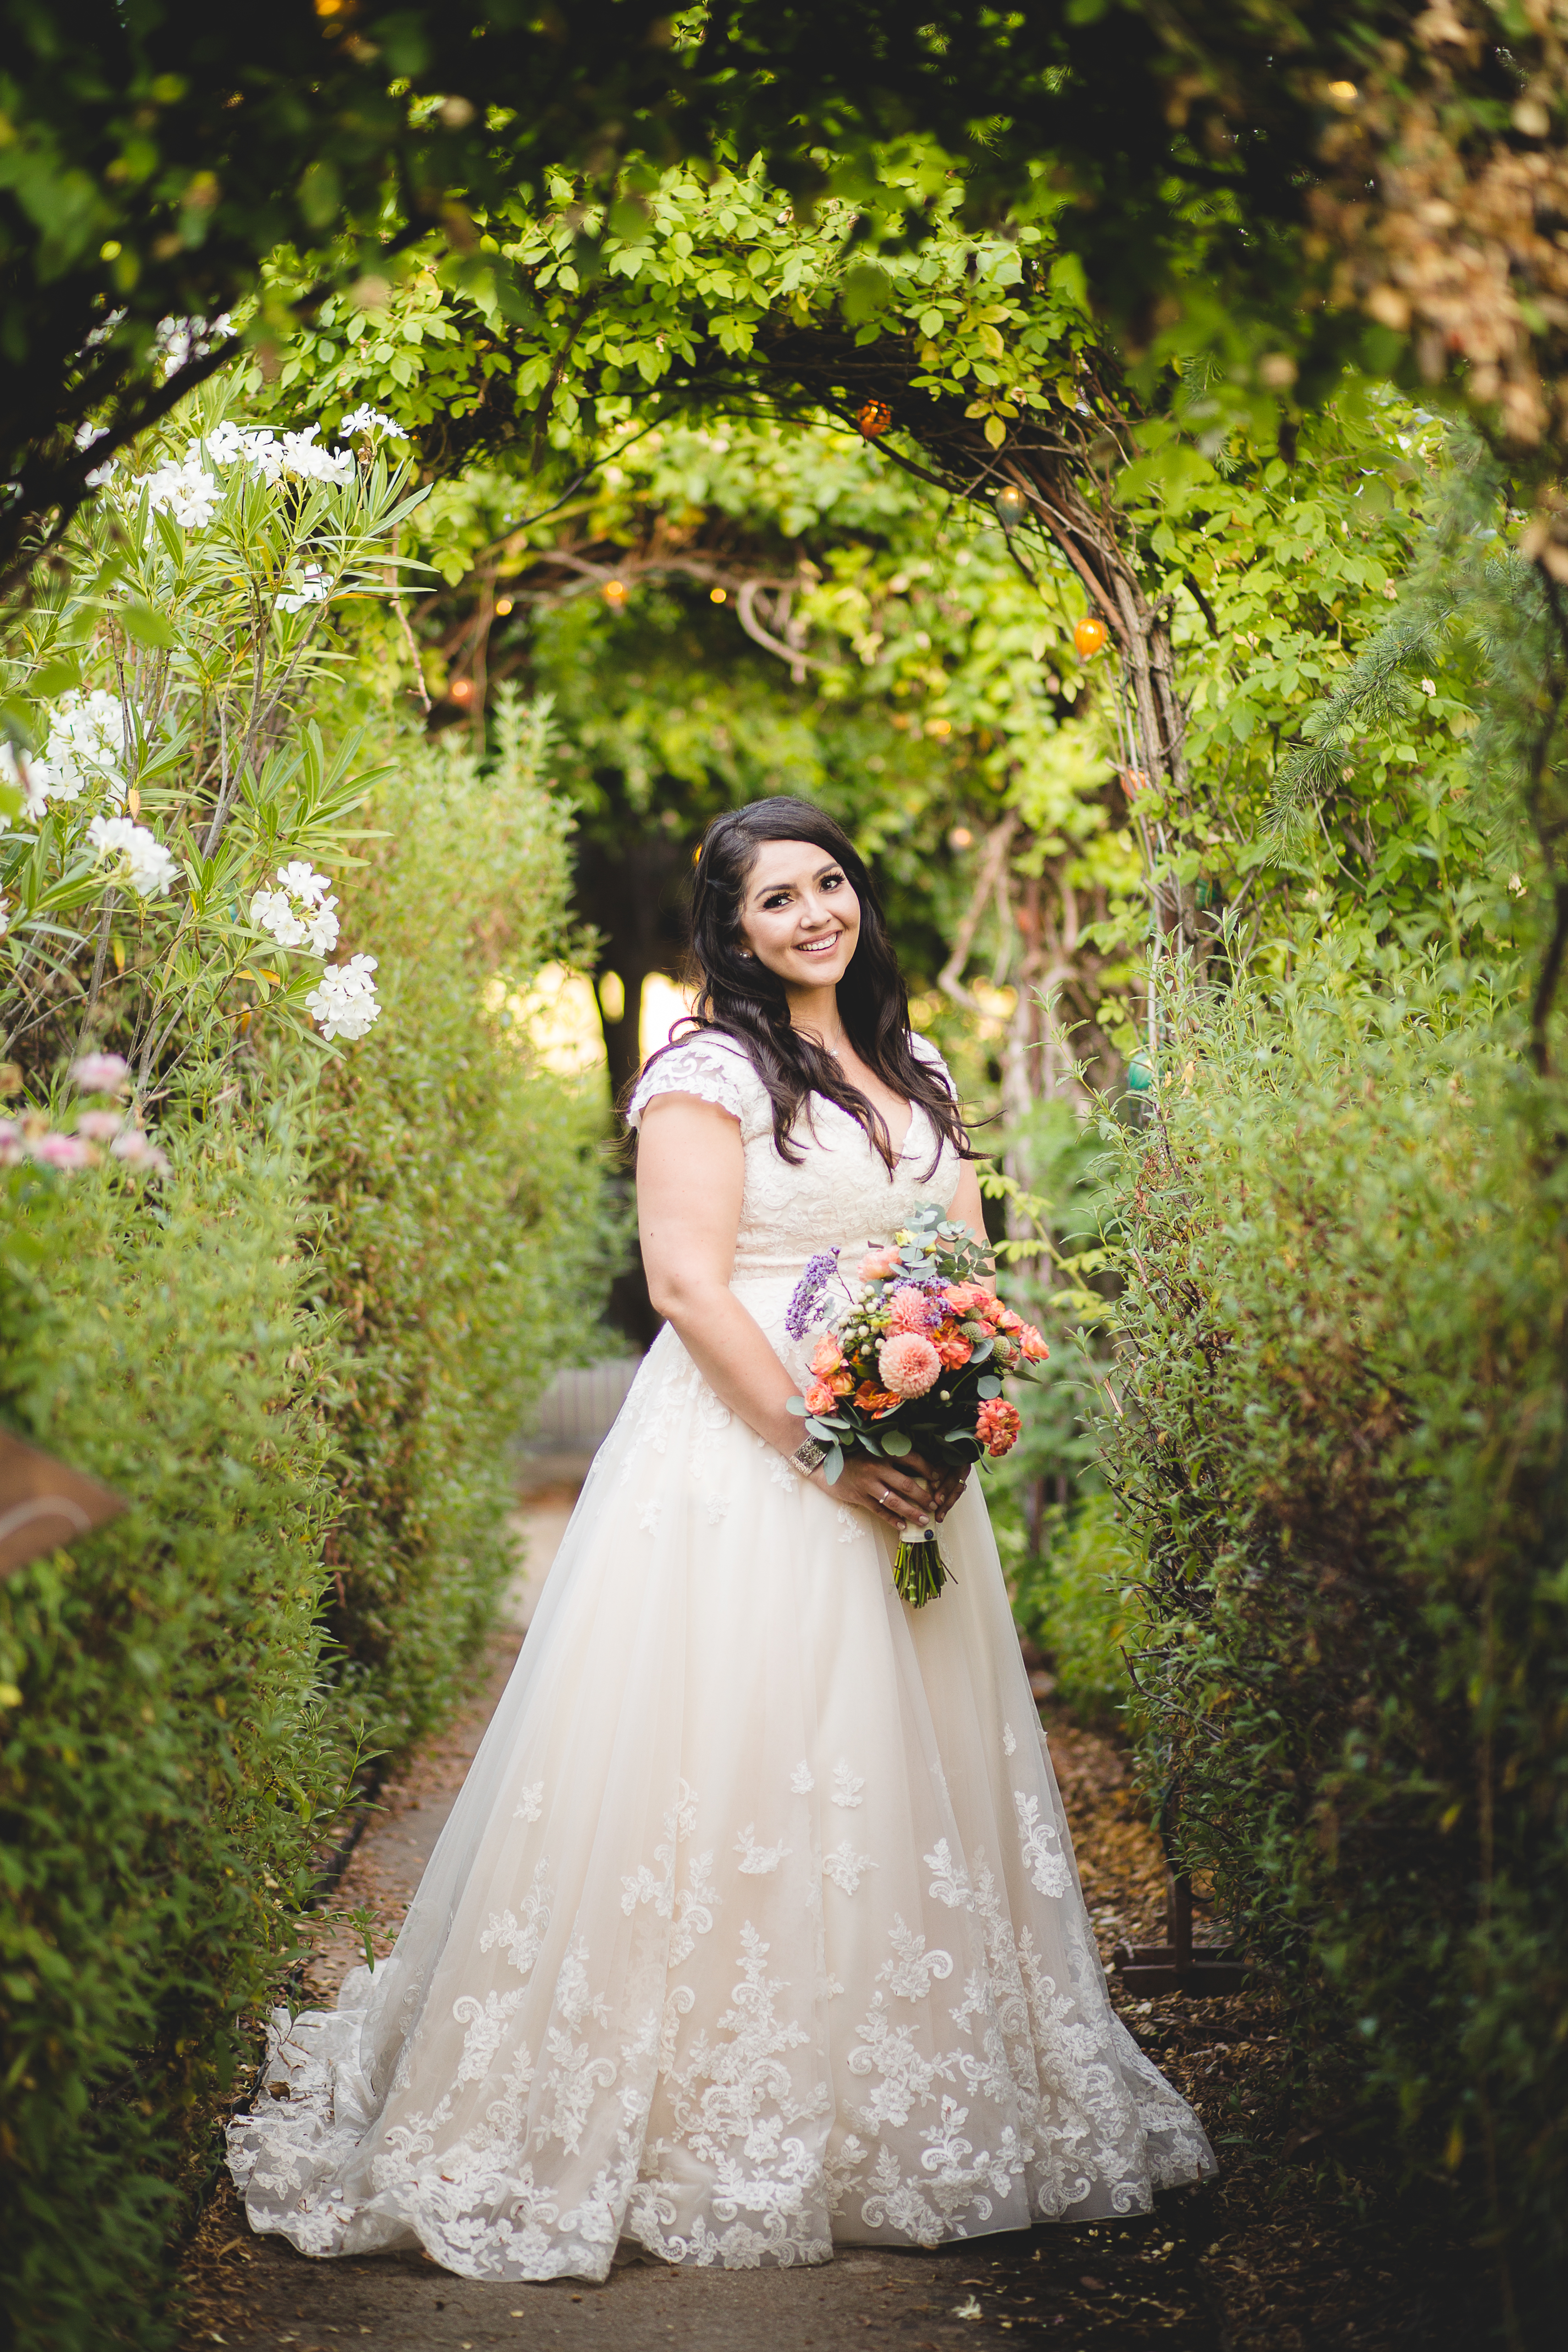 Anomalie specialized in making online wedding dresses for plus sized brides, including dresses with cap sleeves and cascading floral skirt.